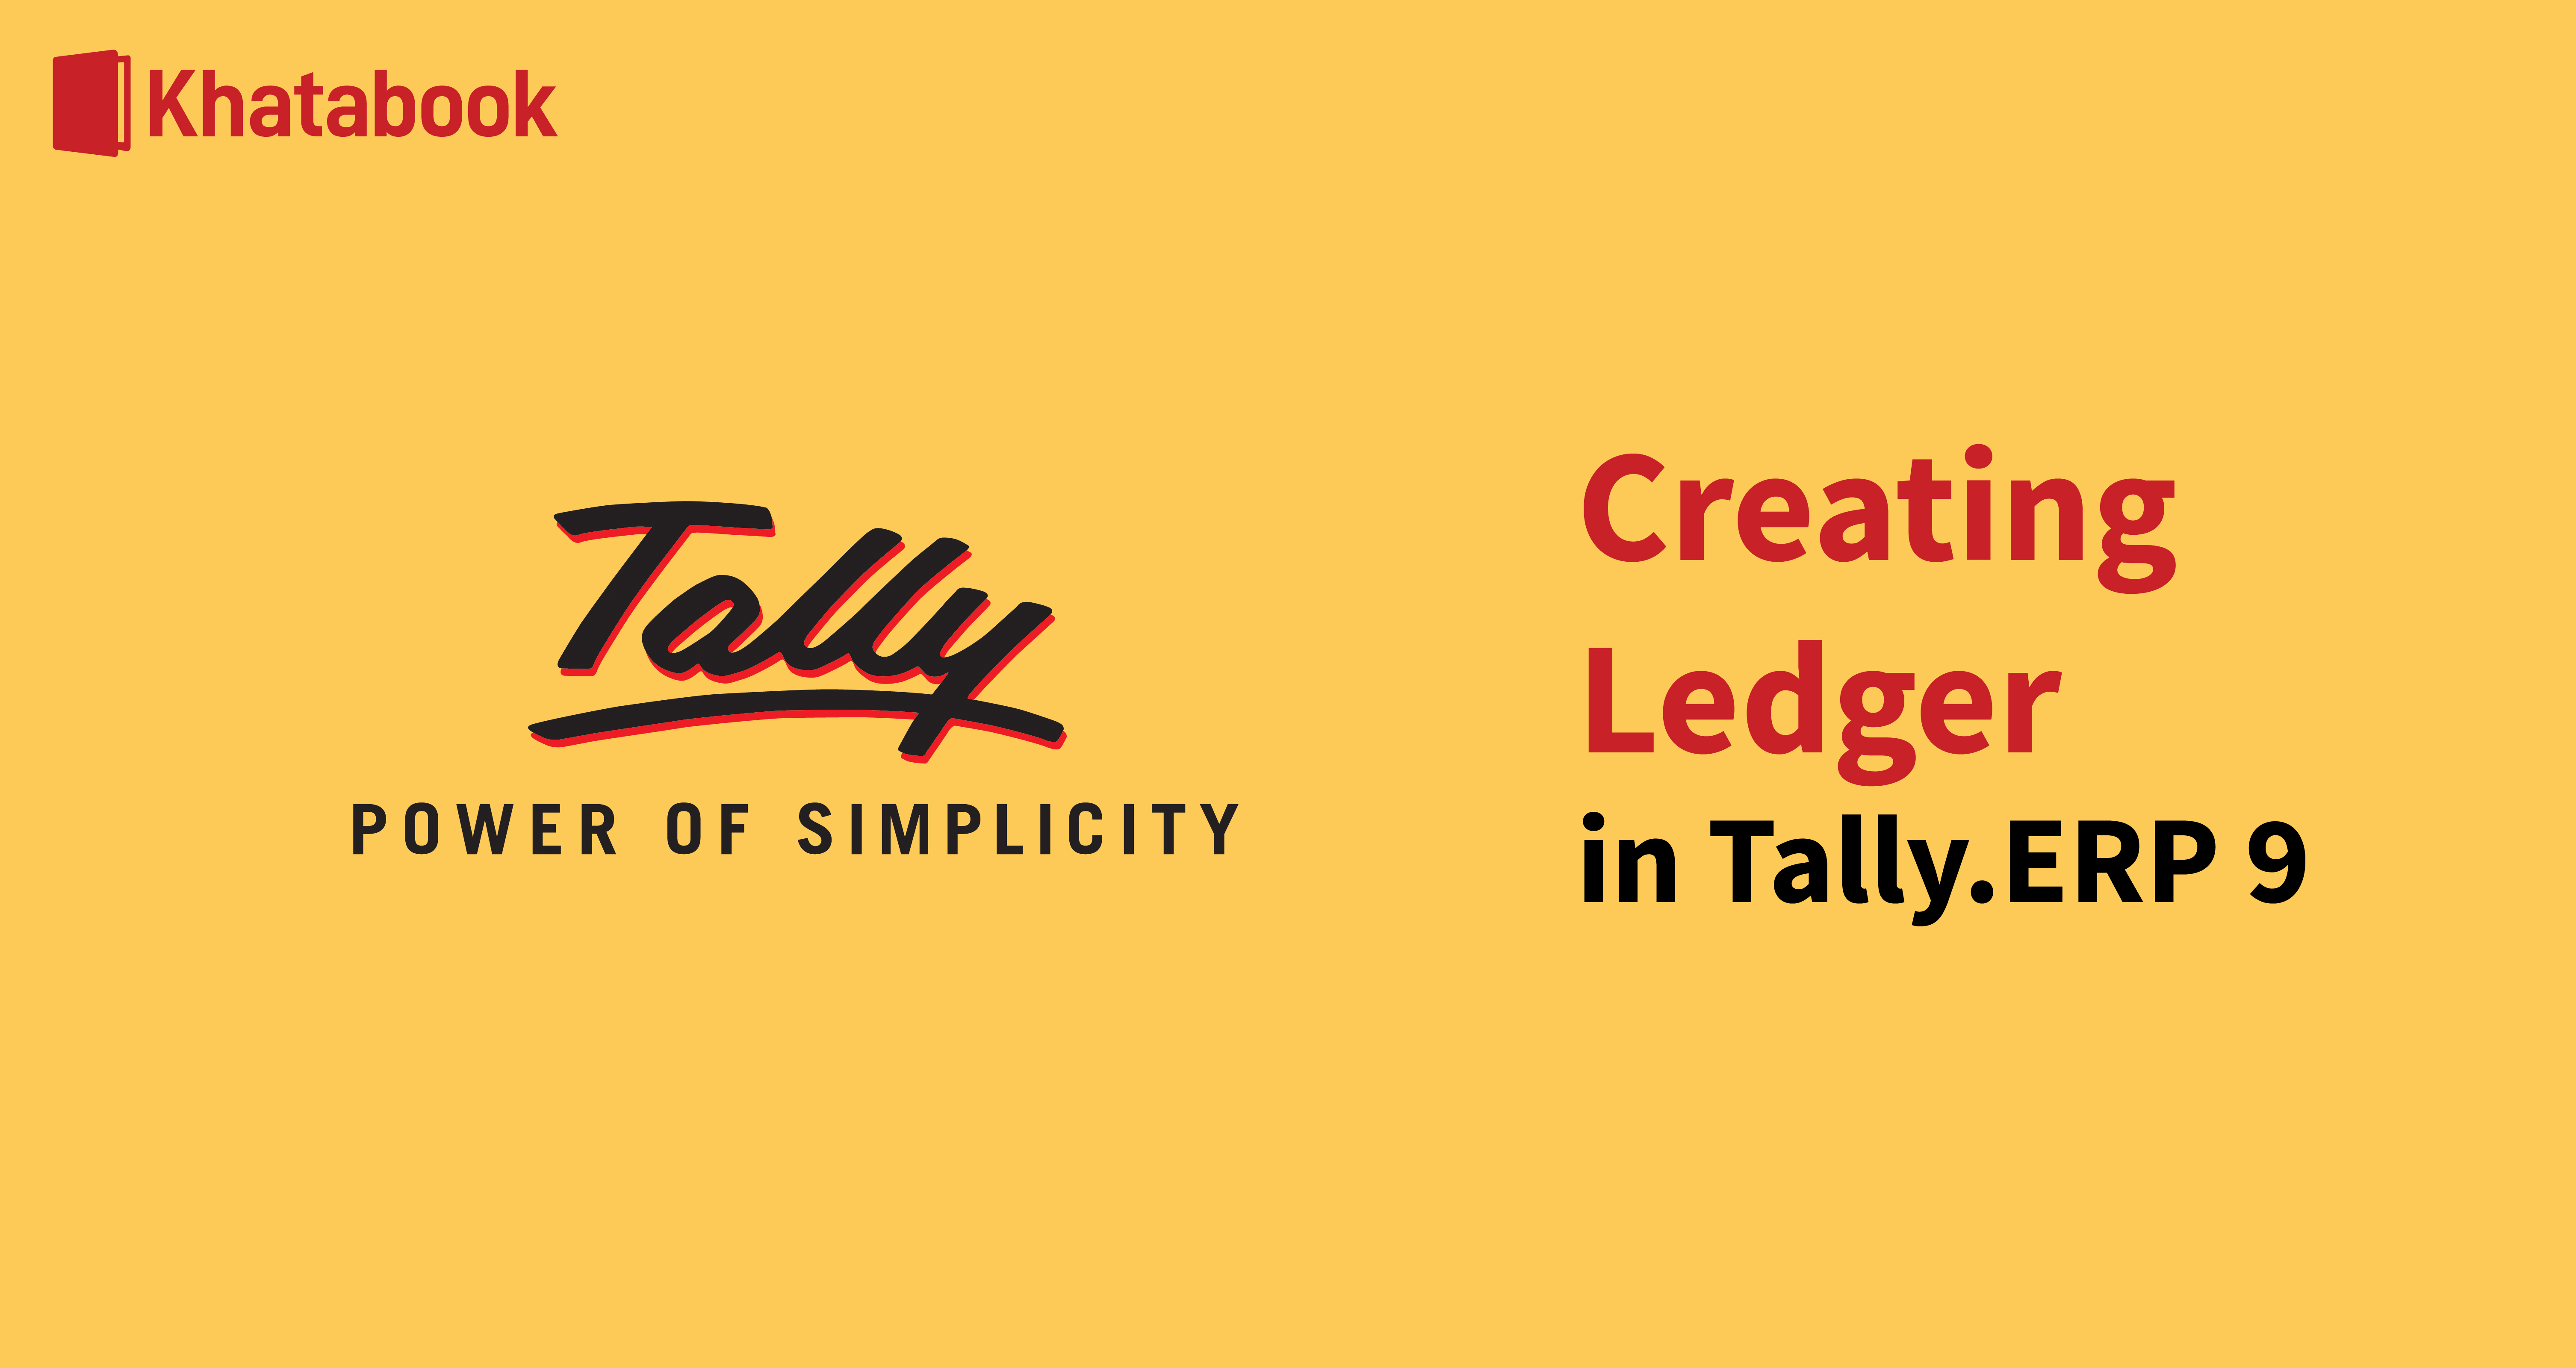 How to Create A Ledger in Tally.ERP 9?